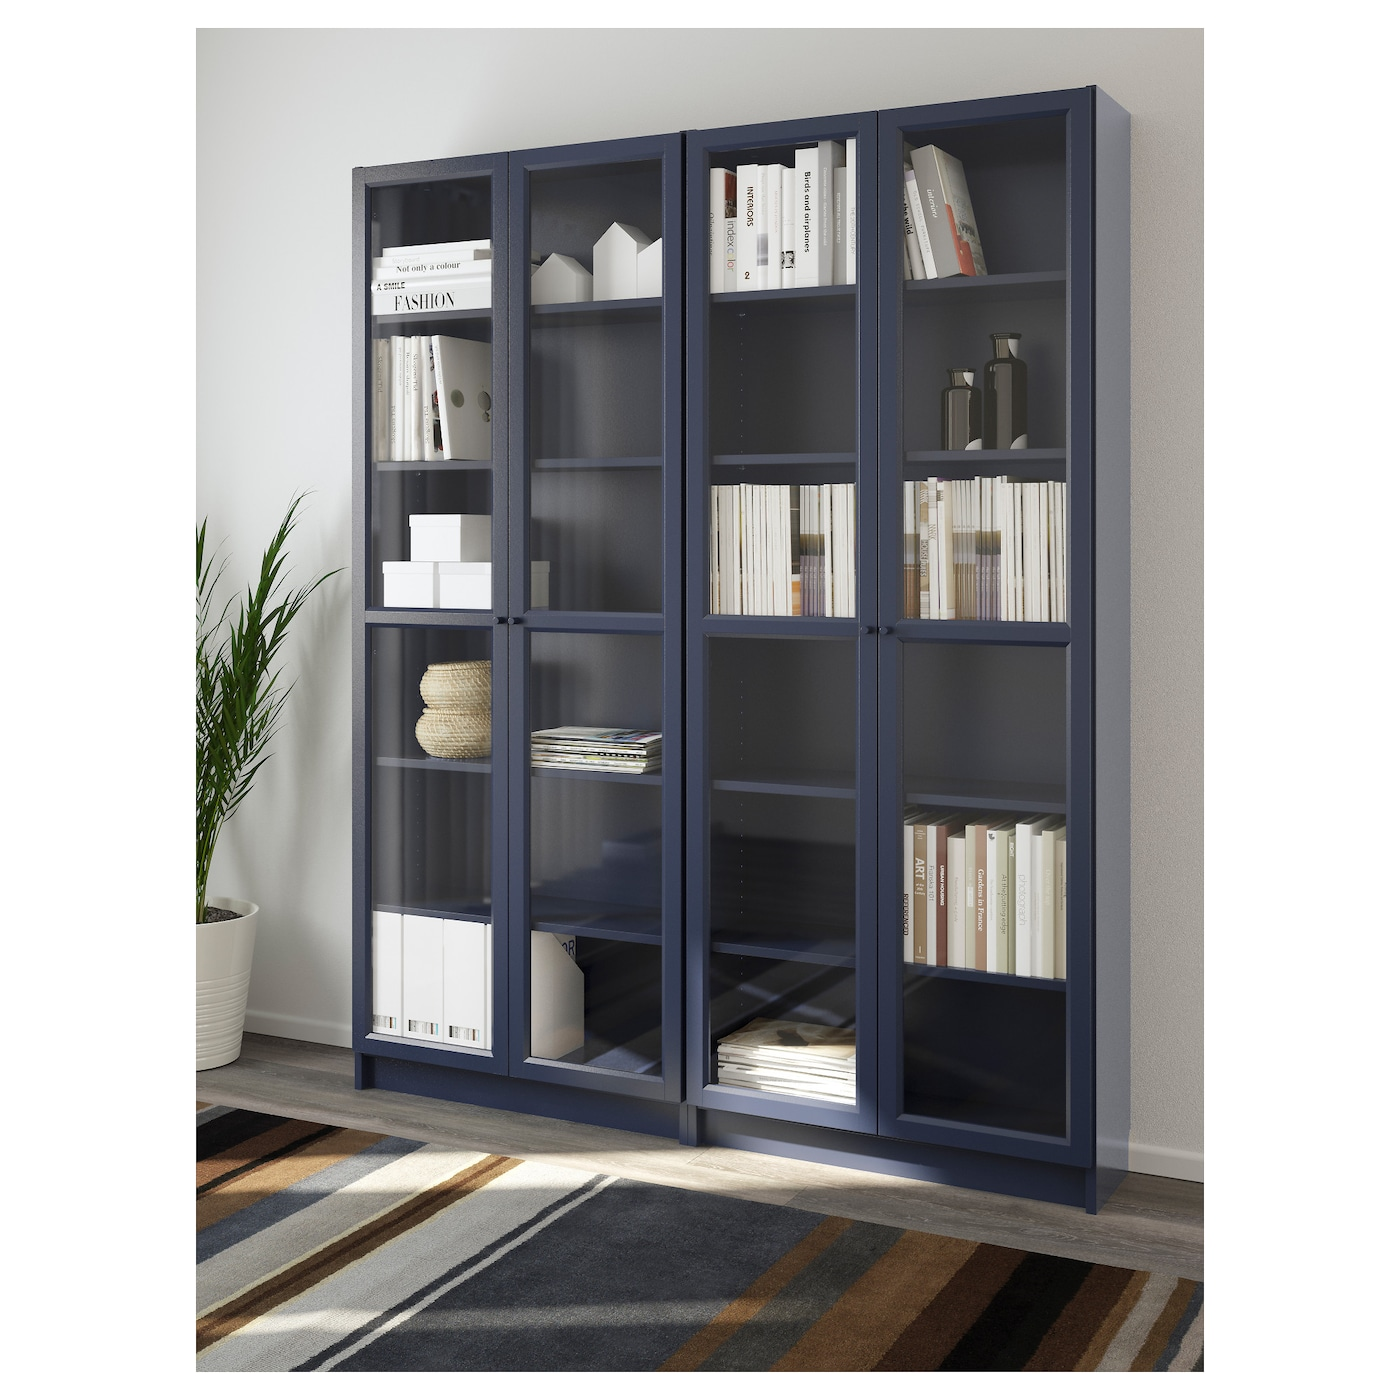 Blue Bookcase billy/oxberg bookcase dark blue 160x202x30 cm - ikea